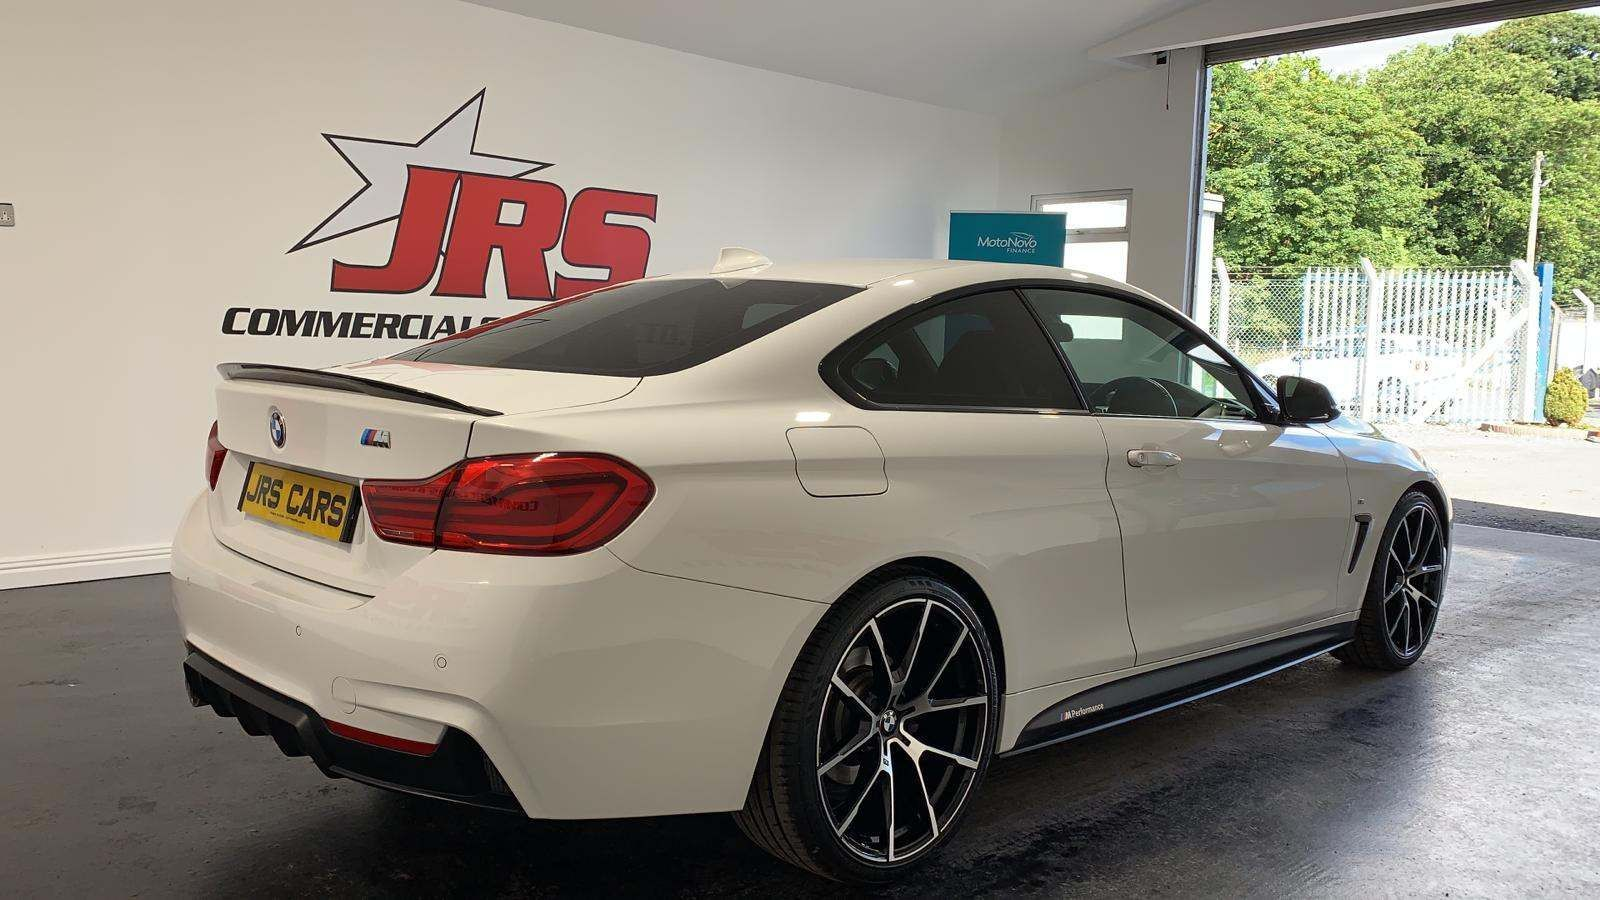 2018 BMW 4 Series 2.0 420d M Sport Auto (s/s) Diesel Automatic Genuine BMW M Performance Kit – J R S Commercials And Cars Dungannon full